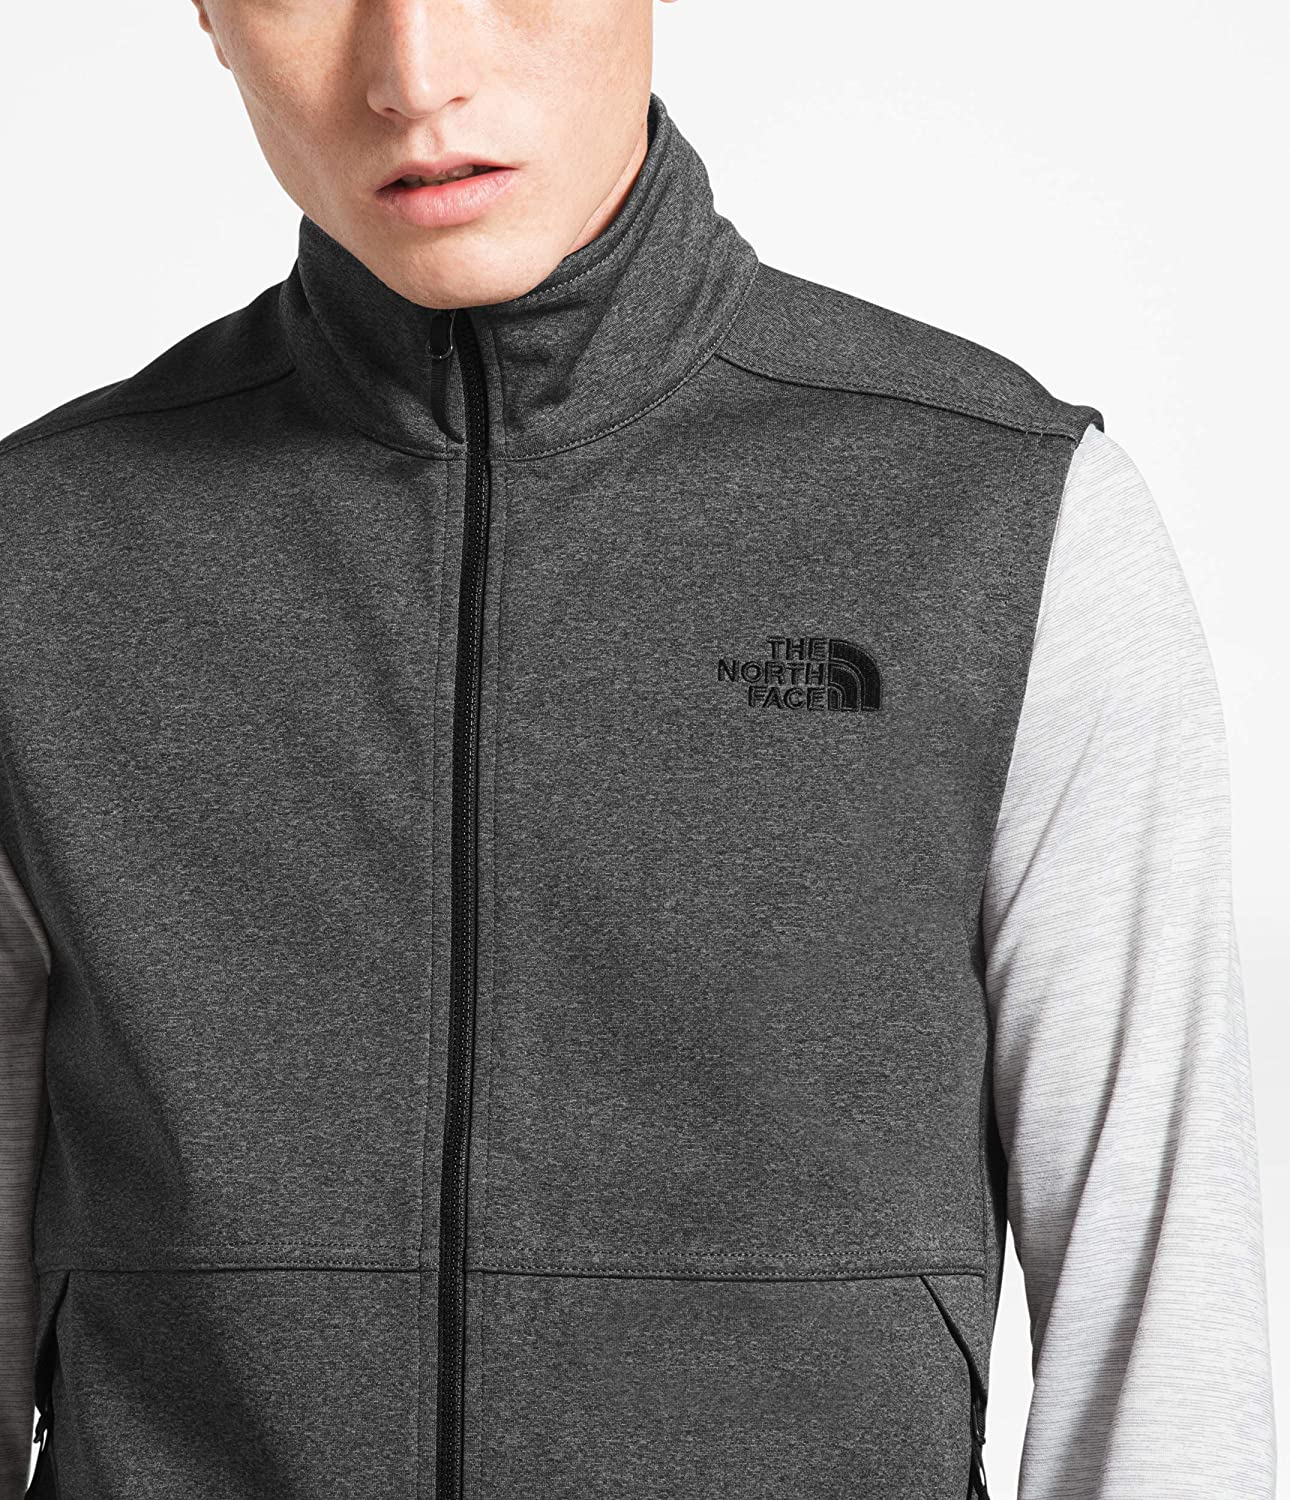 The North Face Mens Apex Canyonwall Vest